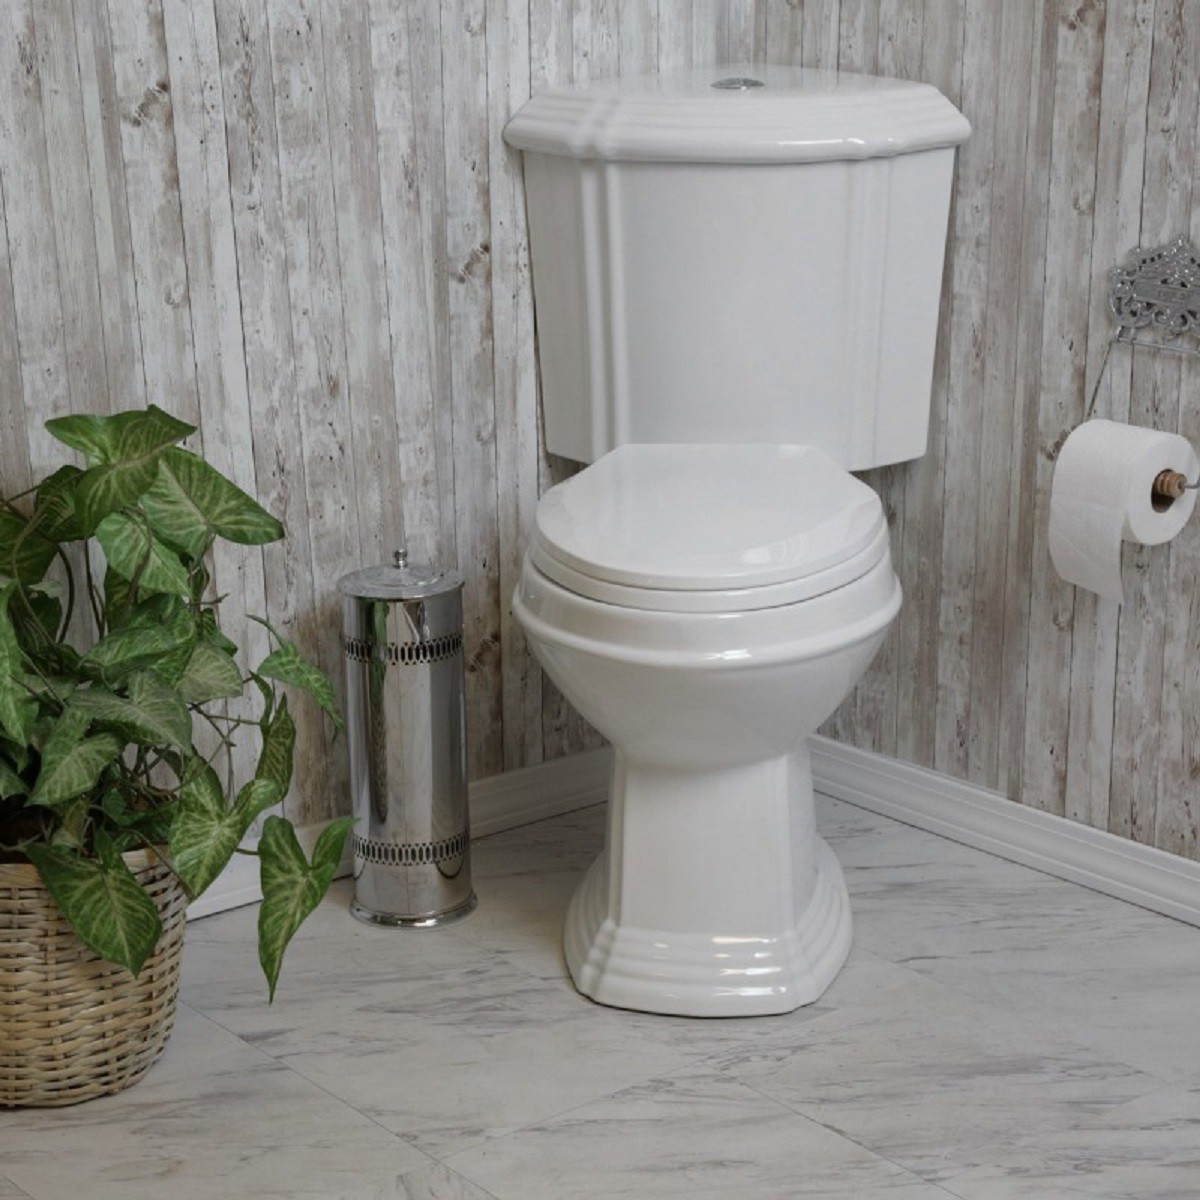 Corner toilet tank small corner toilet renovator 39 s supply - Corner toilets for small spaces style ...